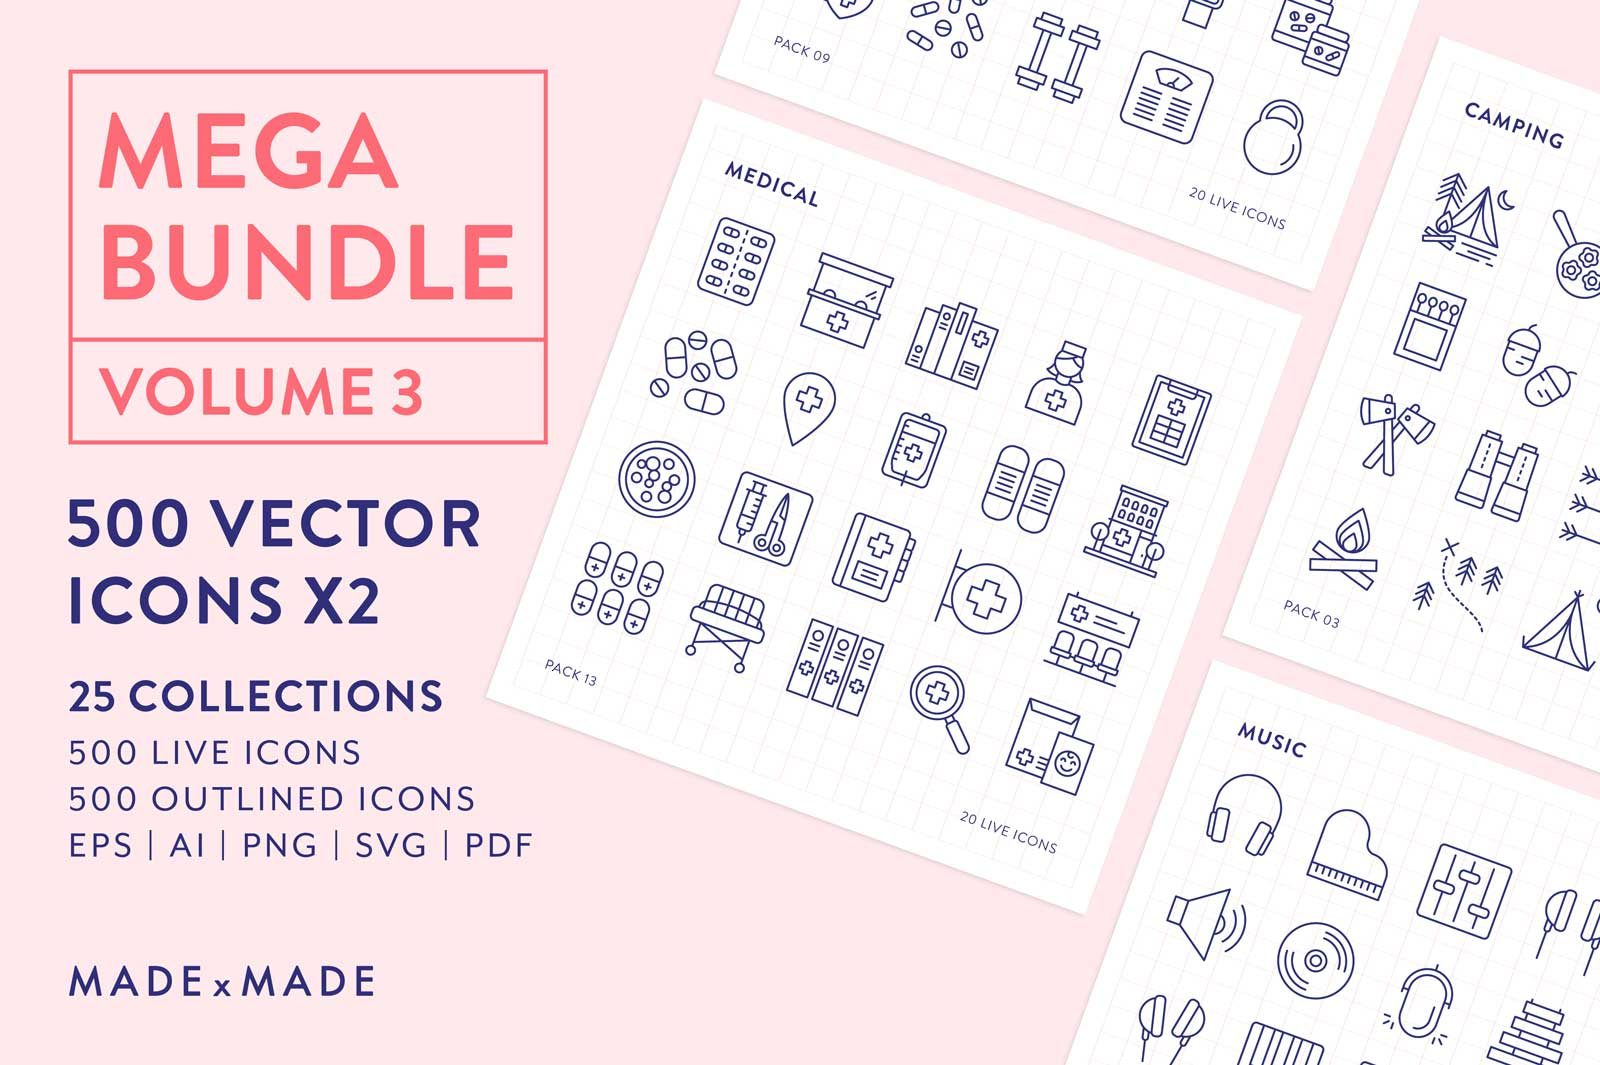 made x made icons mega bundle vol 3